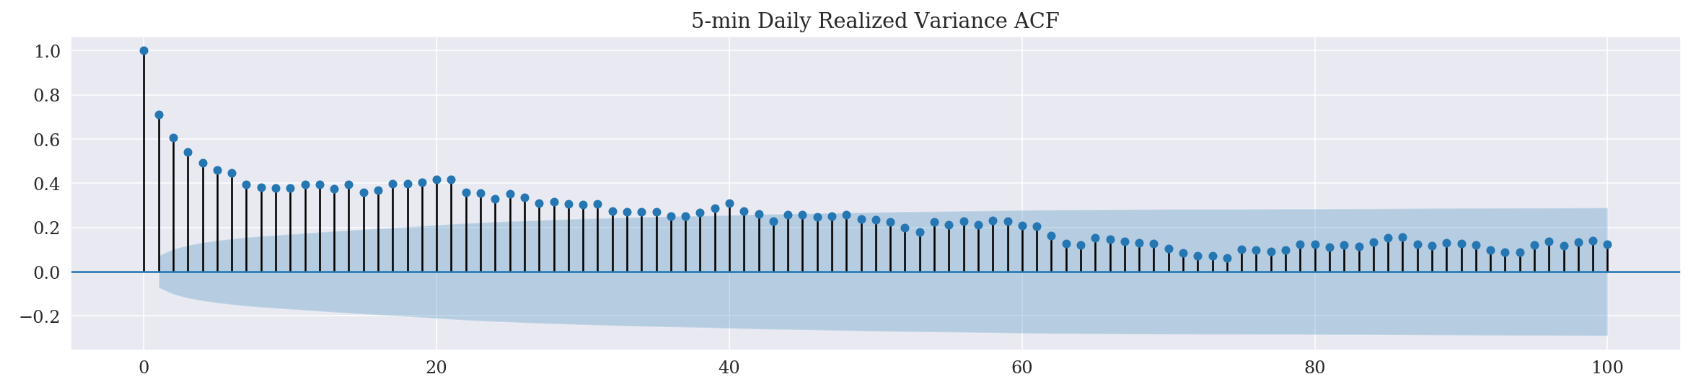 5_min_daily_realized_variance_acf.png